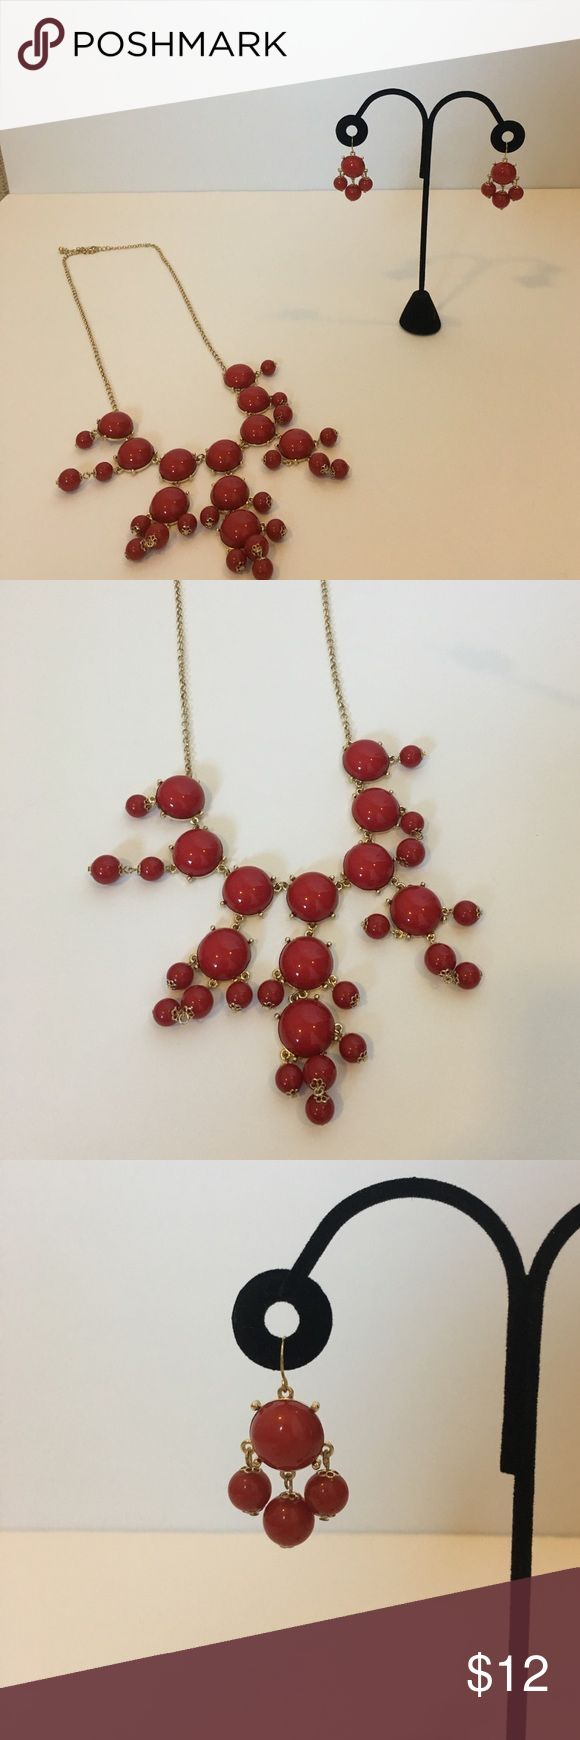 """Red Bubble Necklace & Earring Set Just in time for Valentine's Day!! Red bubble statement necklace with earrings. Gold adjustable chain.  On longest hook from top to bottom is approximately 16"""".  Worn once. Jewelry"""